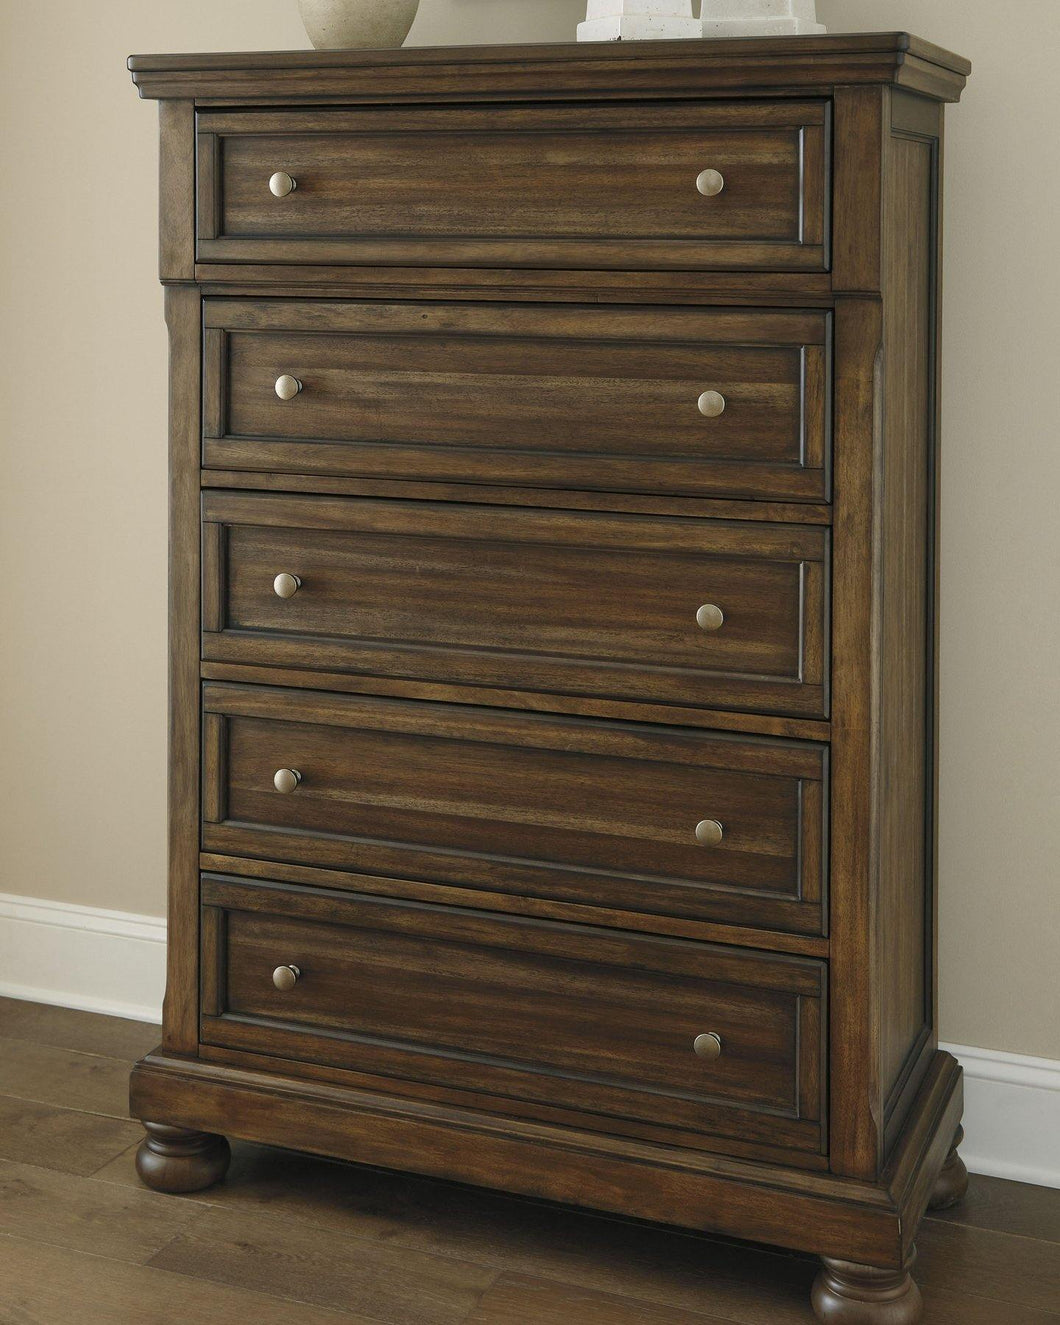 Flynnter Chest of Drawers B719-46 By Ashley Furniture from sofafair